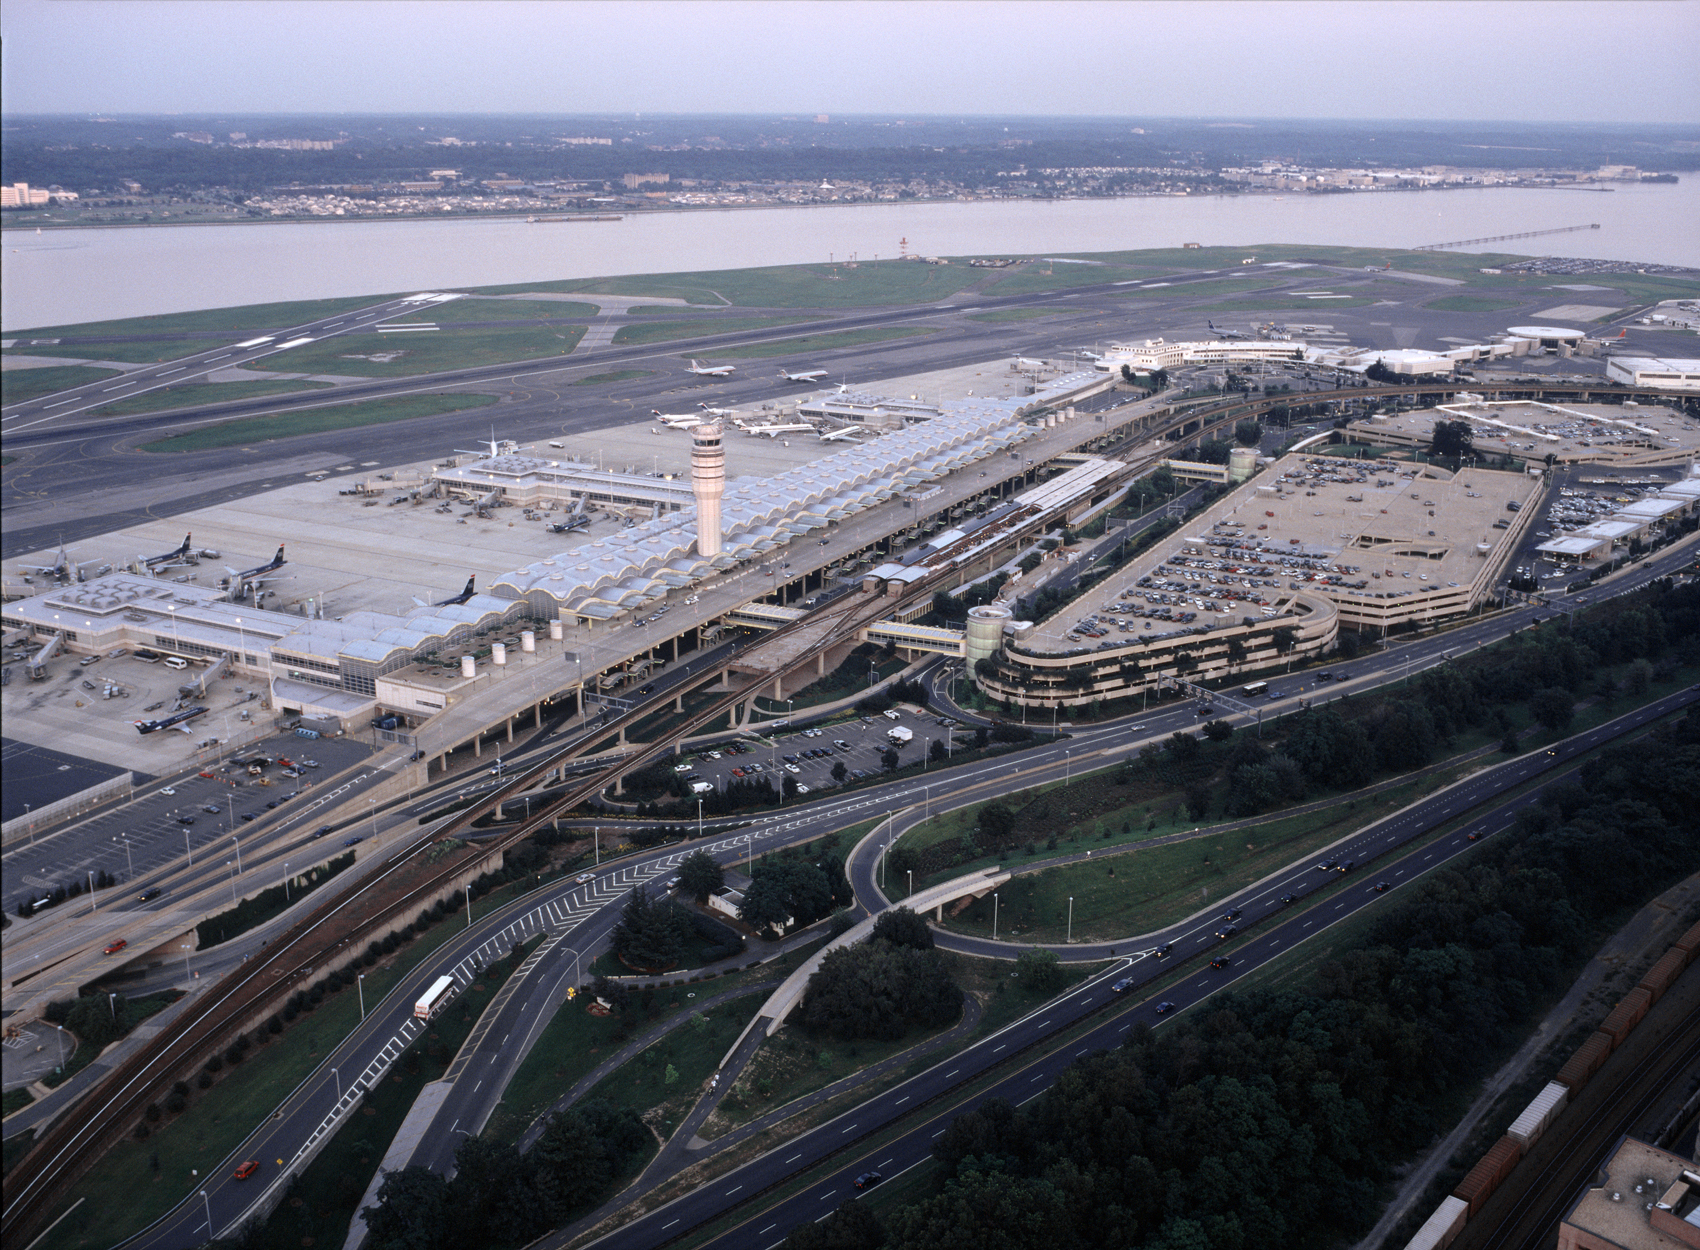 Washington Dulles International Airport - aviation parking deck design